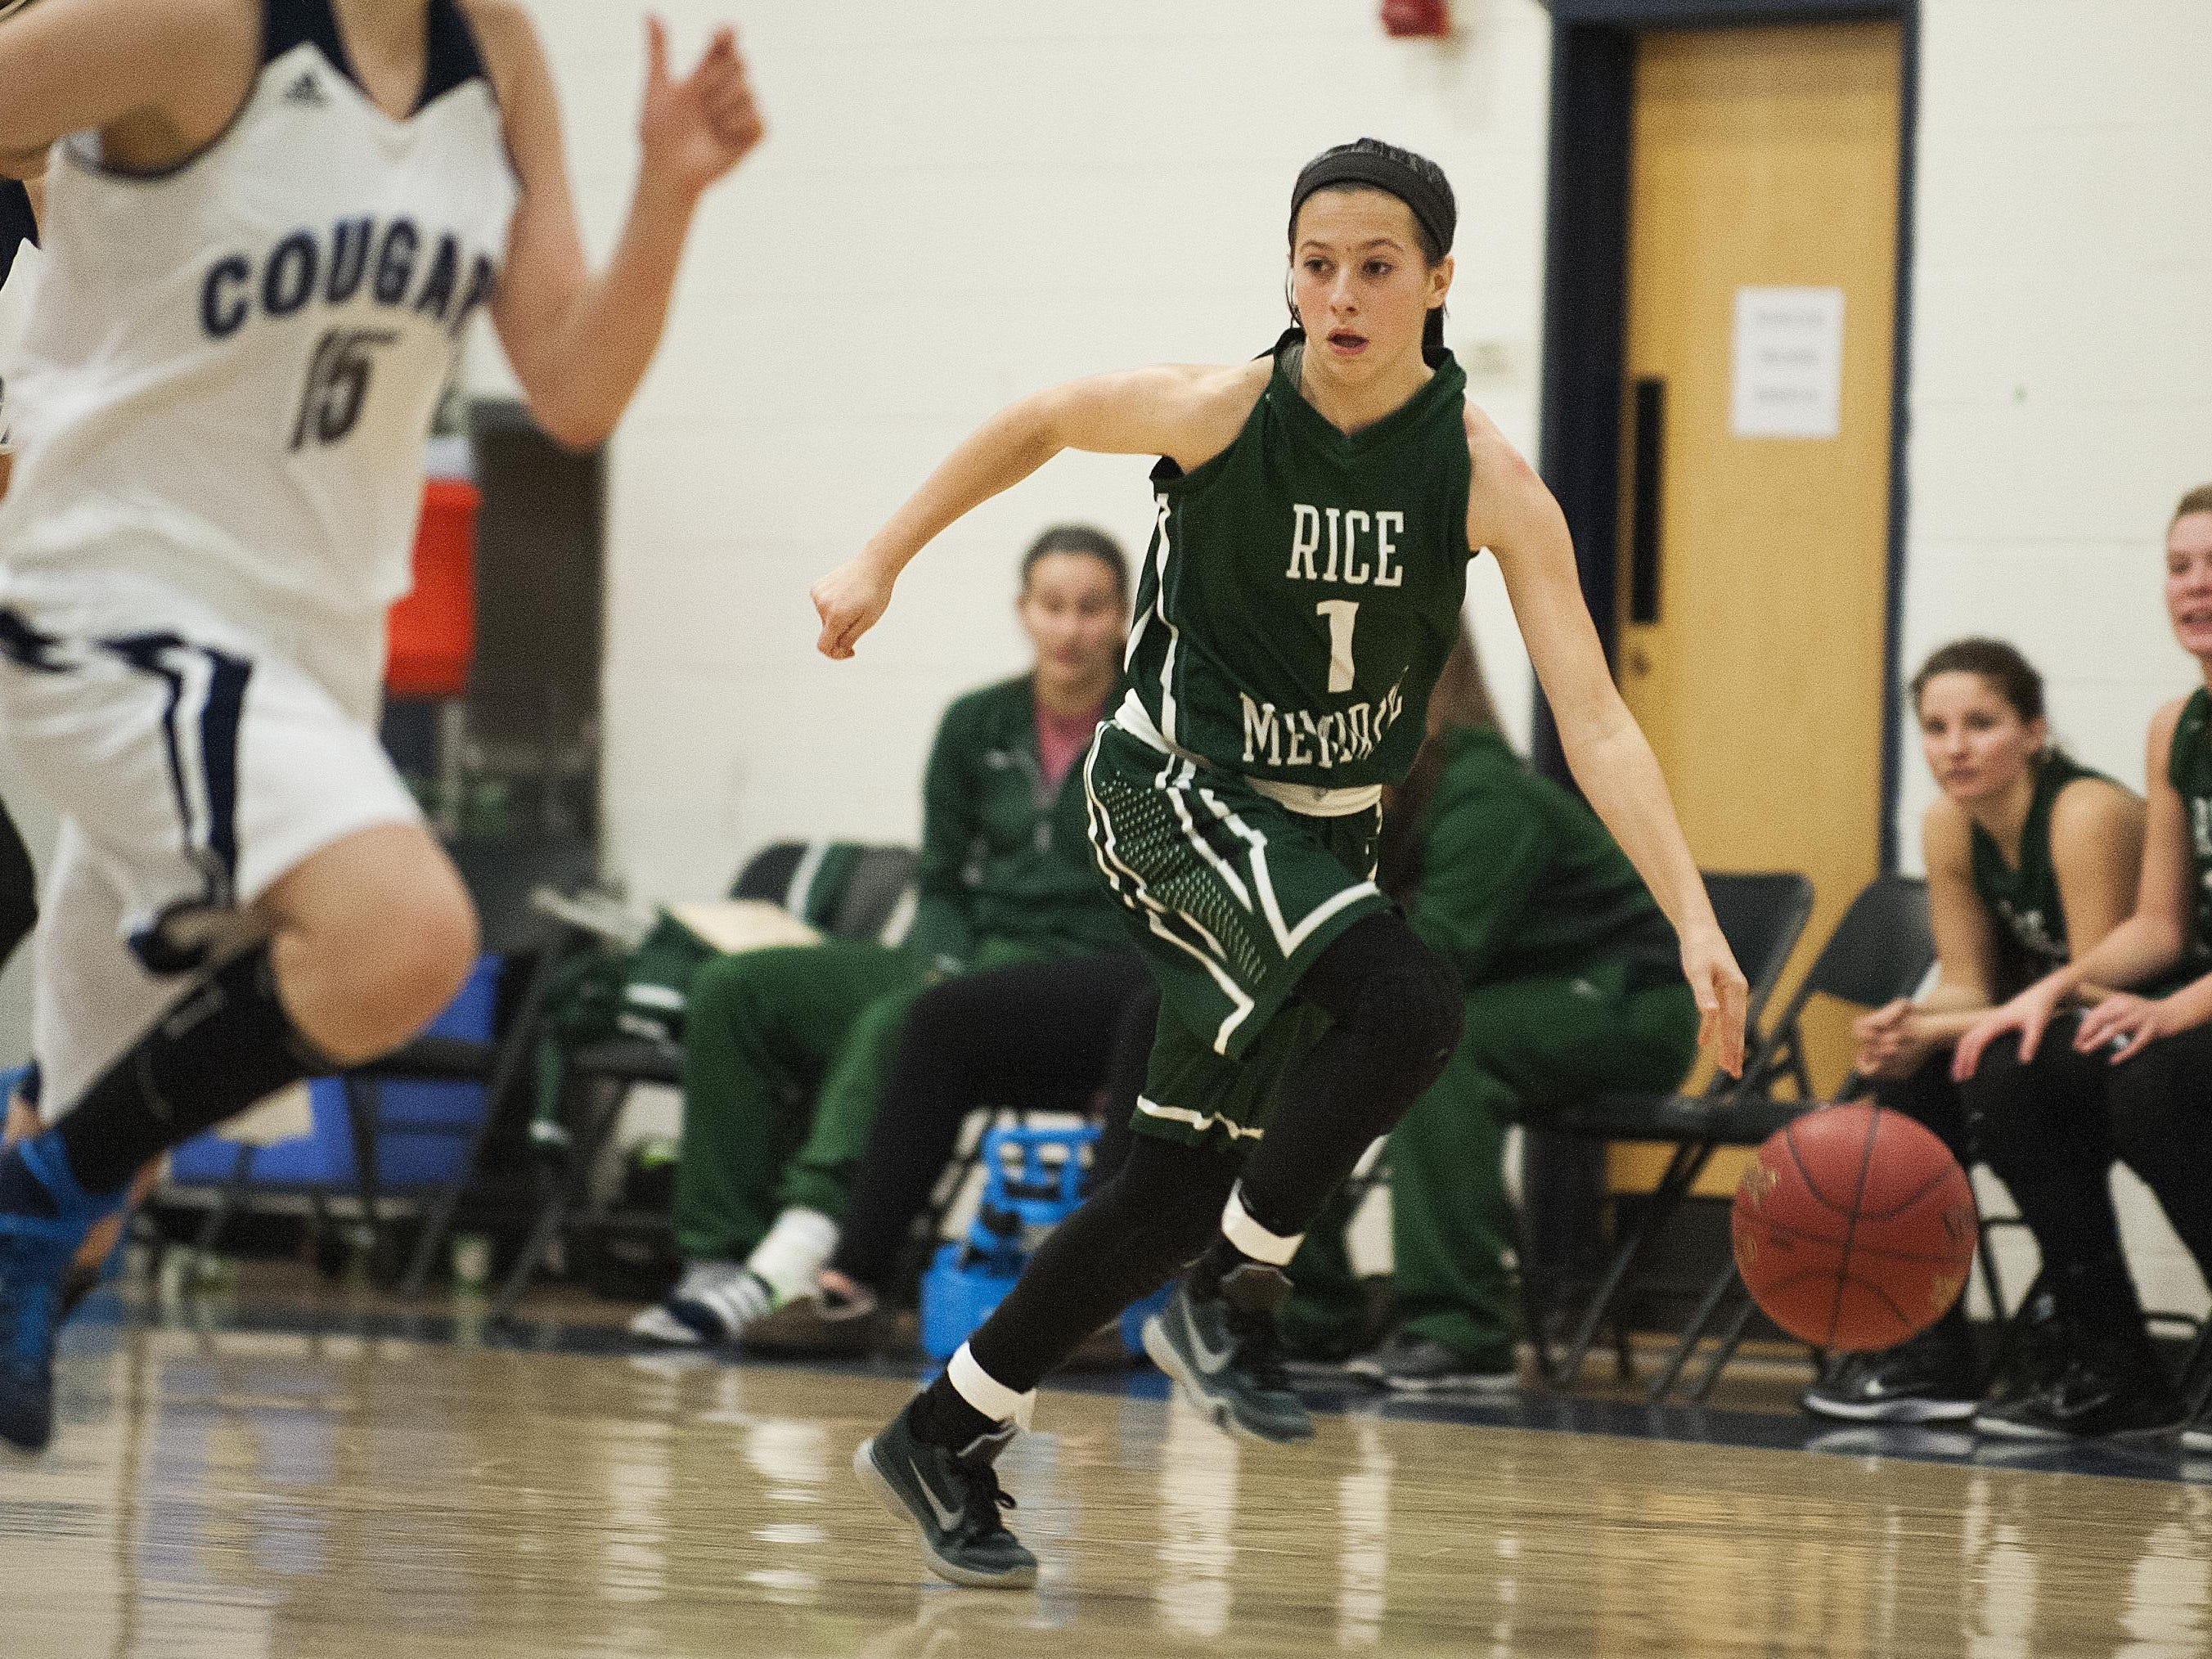 Rice guard Leah Larivee (1) dribbles the ball down the court during the girls basketball game between the Rice Green knights and the Mount Mansfield Cougars at MMU High School on Friday night December 4, 2015 in Jericho.